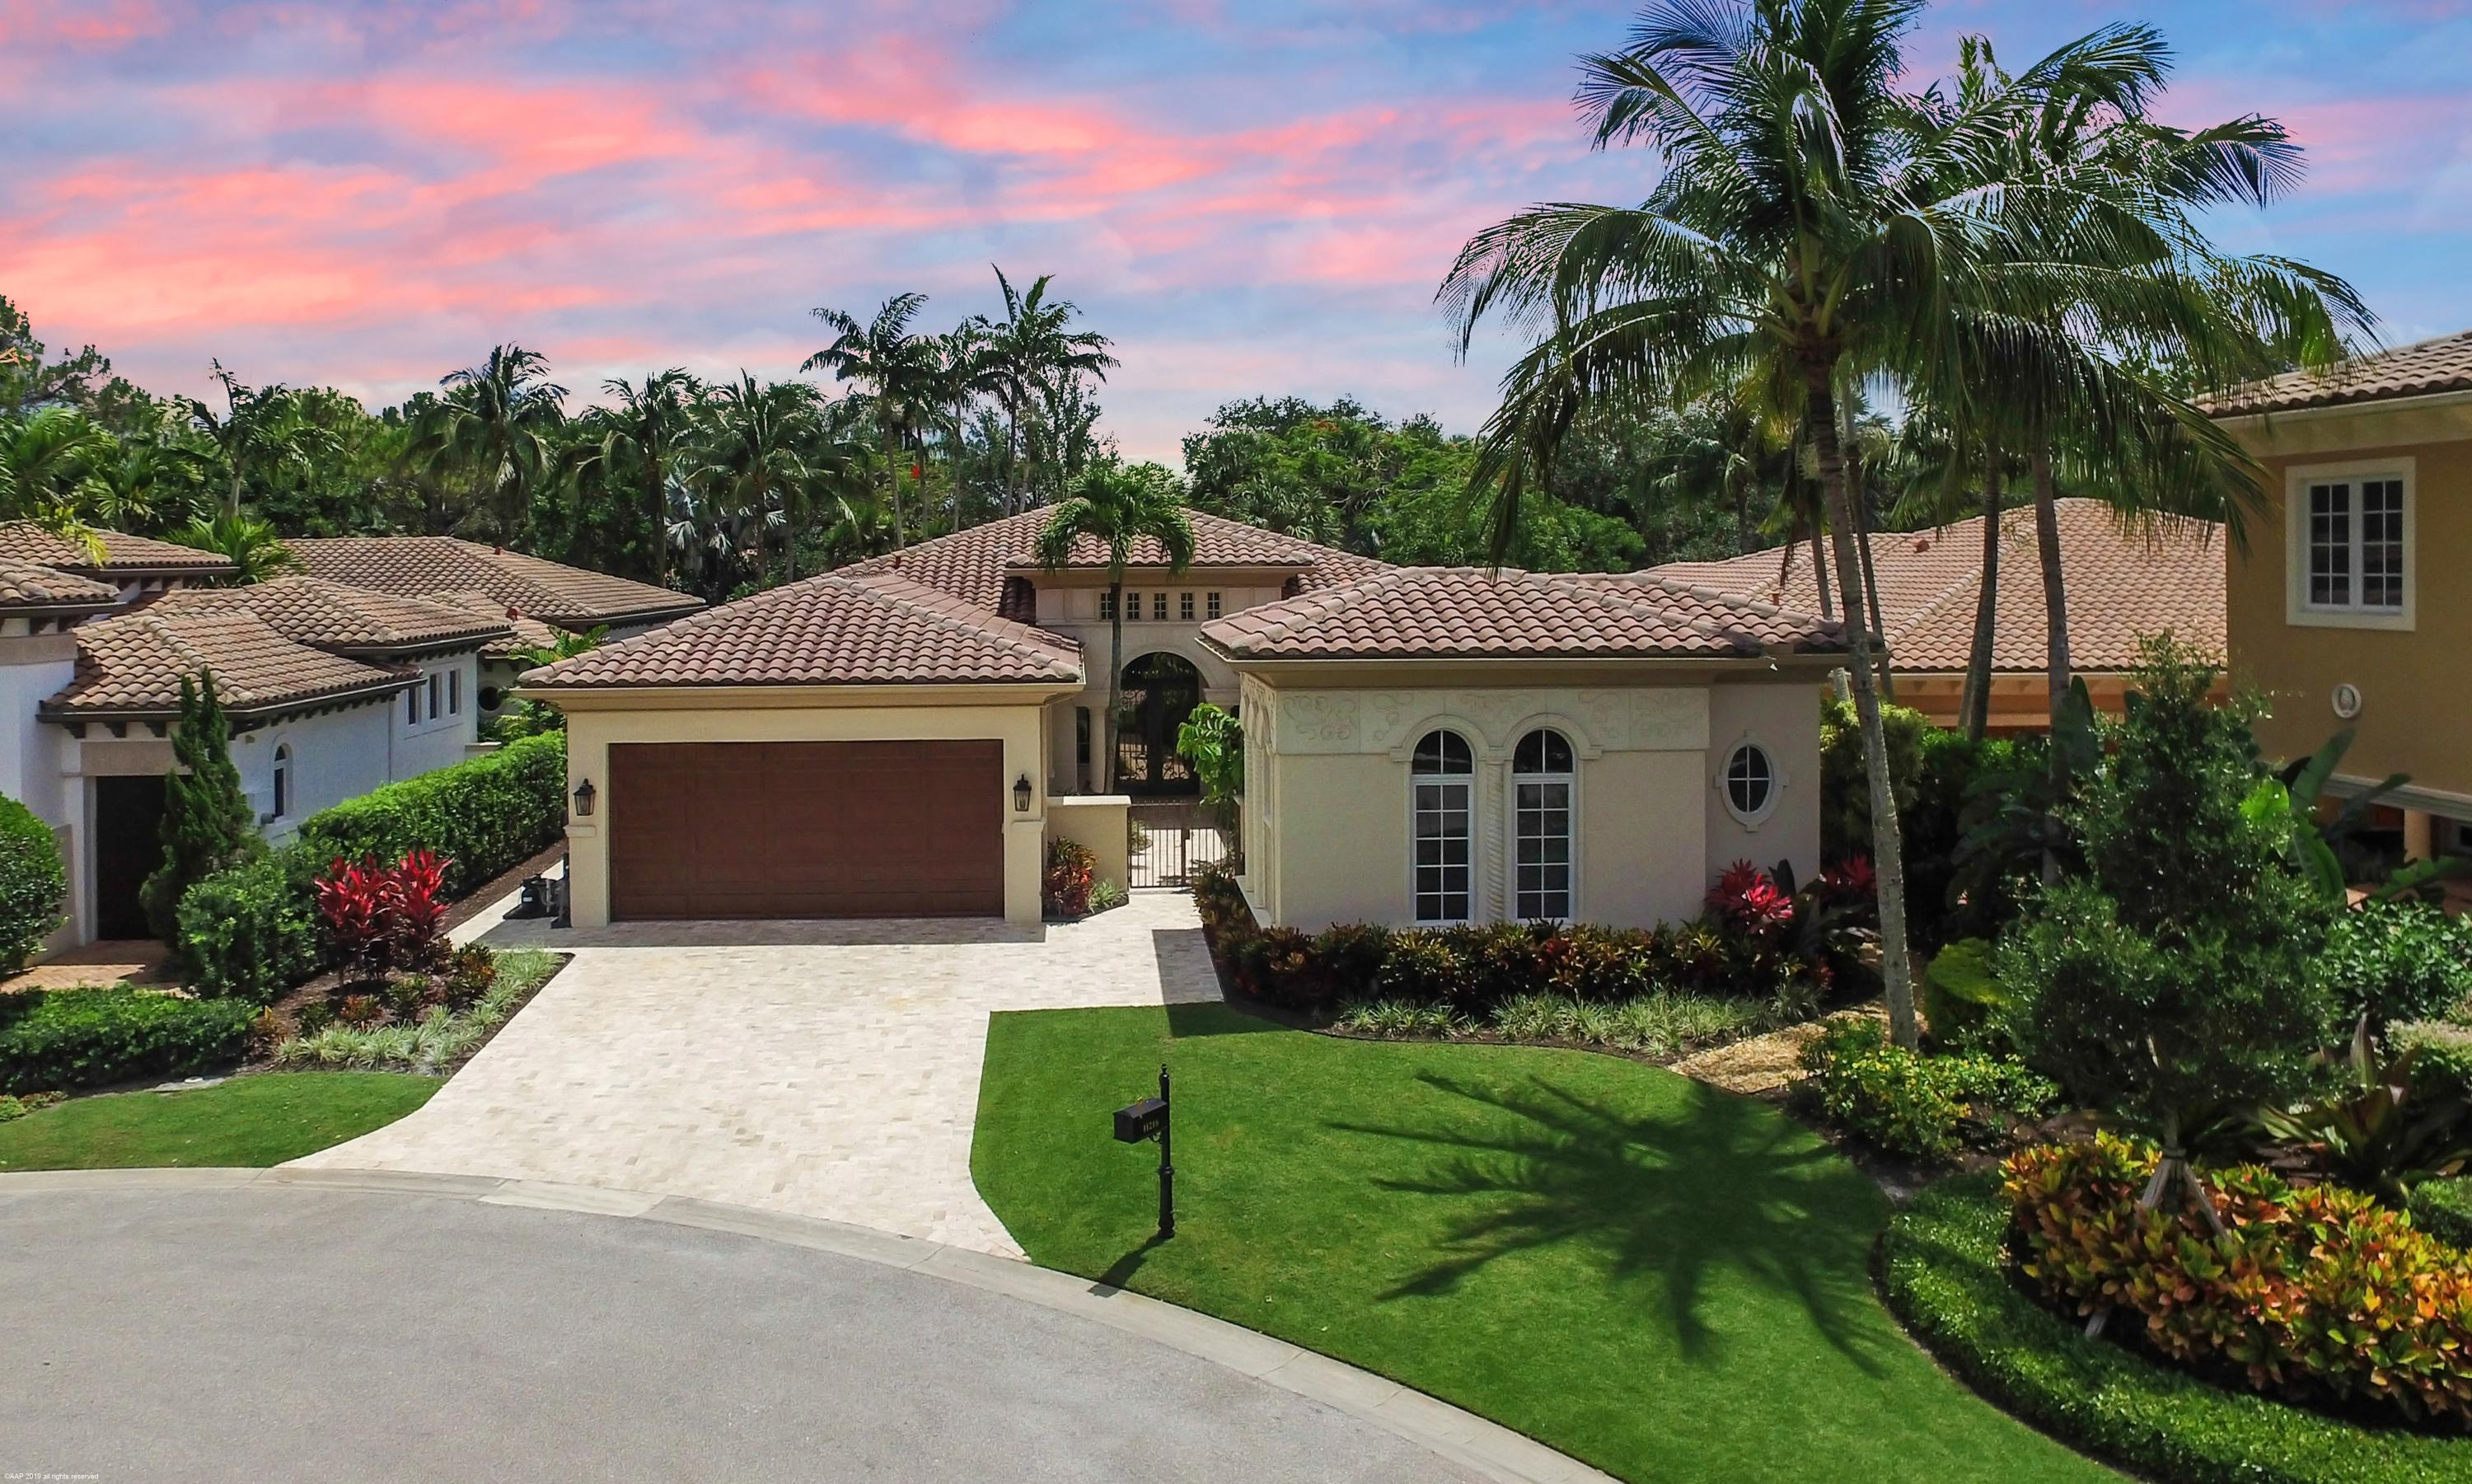 Home for sale in Old Palm Golf Club Palm Beach Gardens Florida